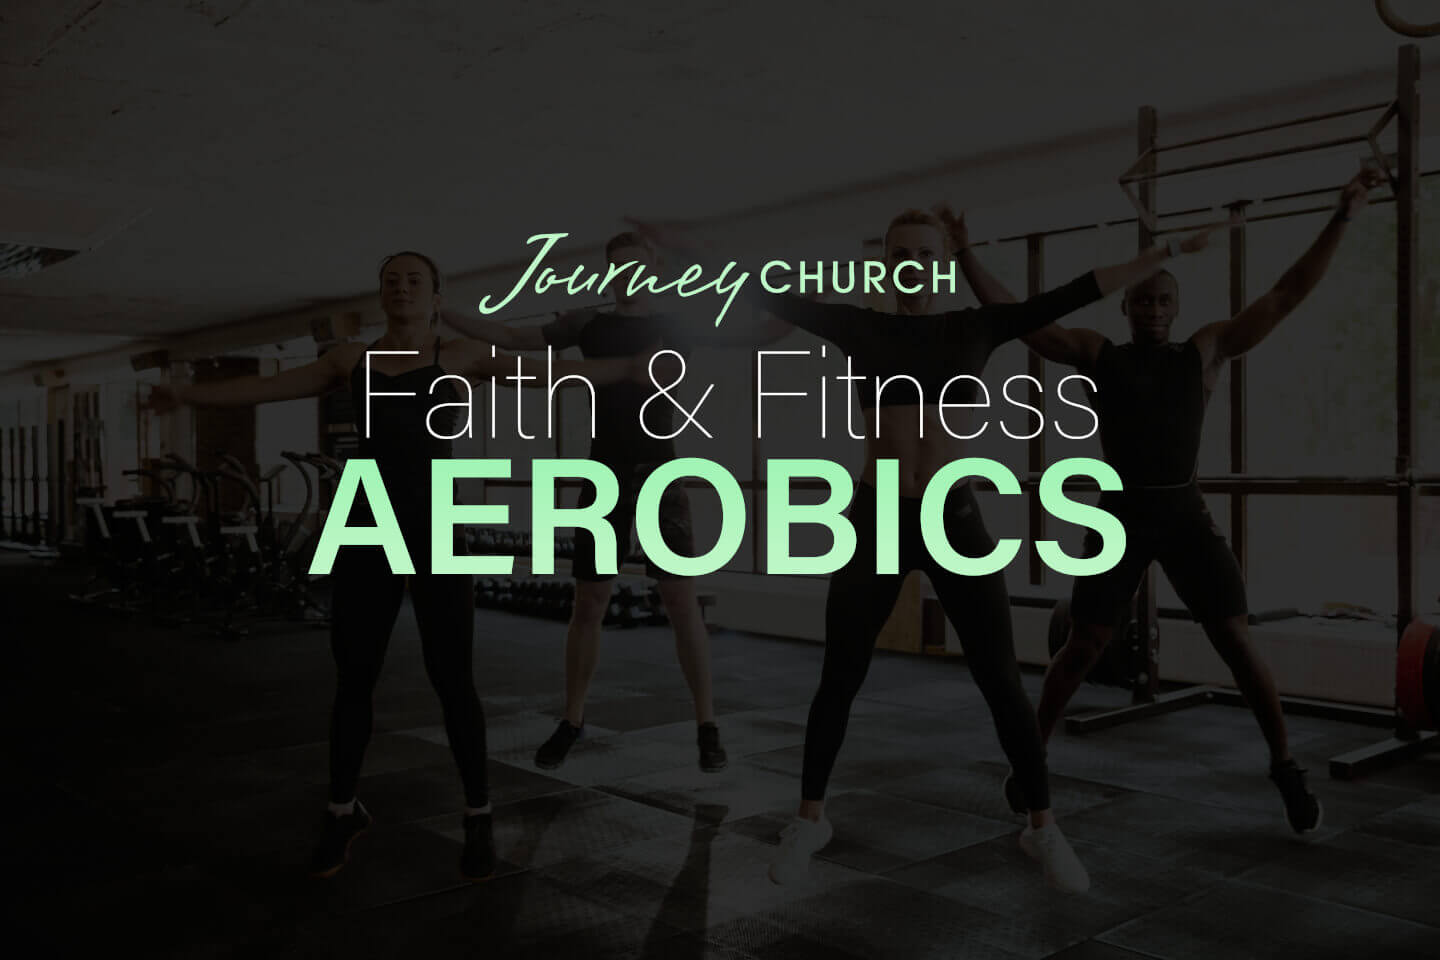 Journey Church Faith and Fitness Aerobics